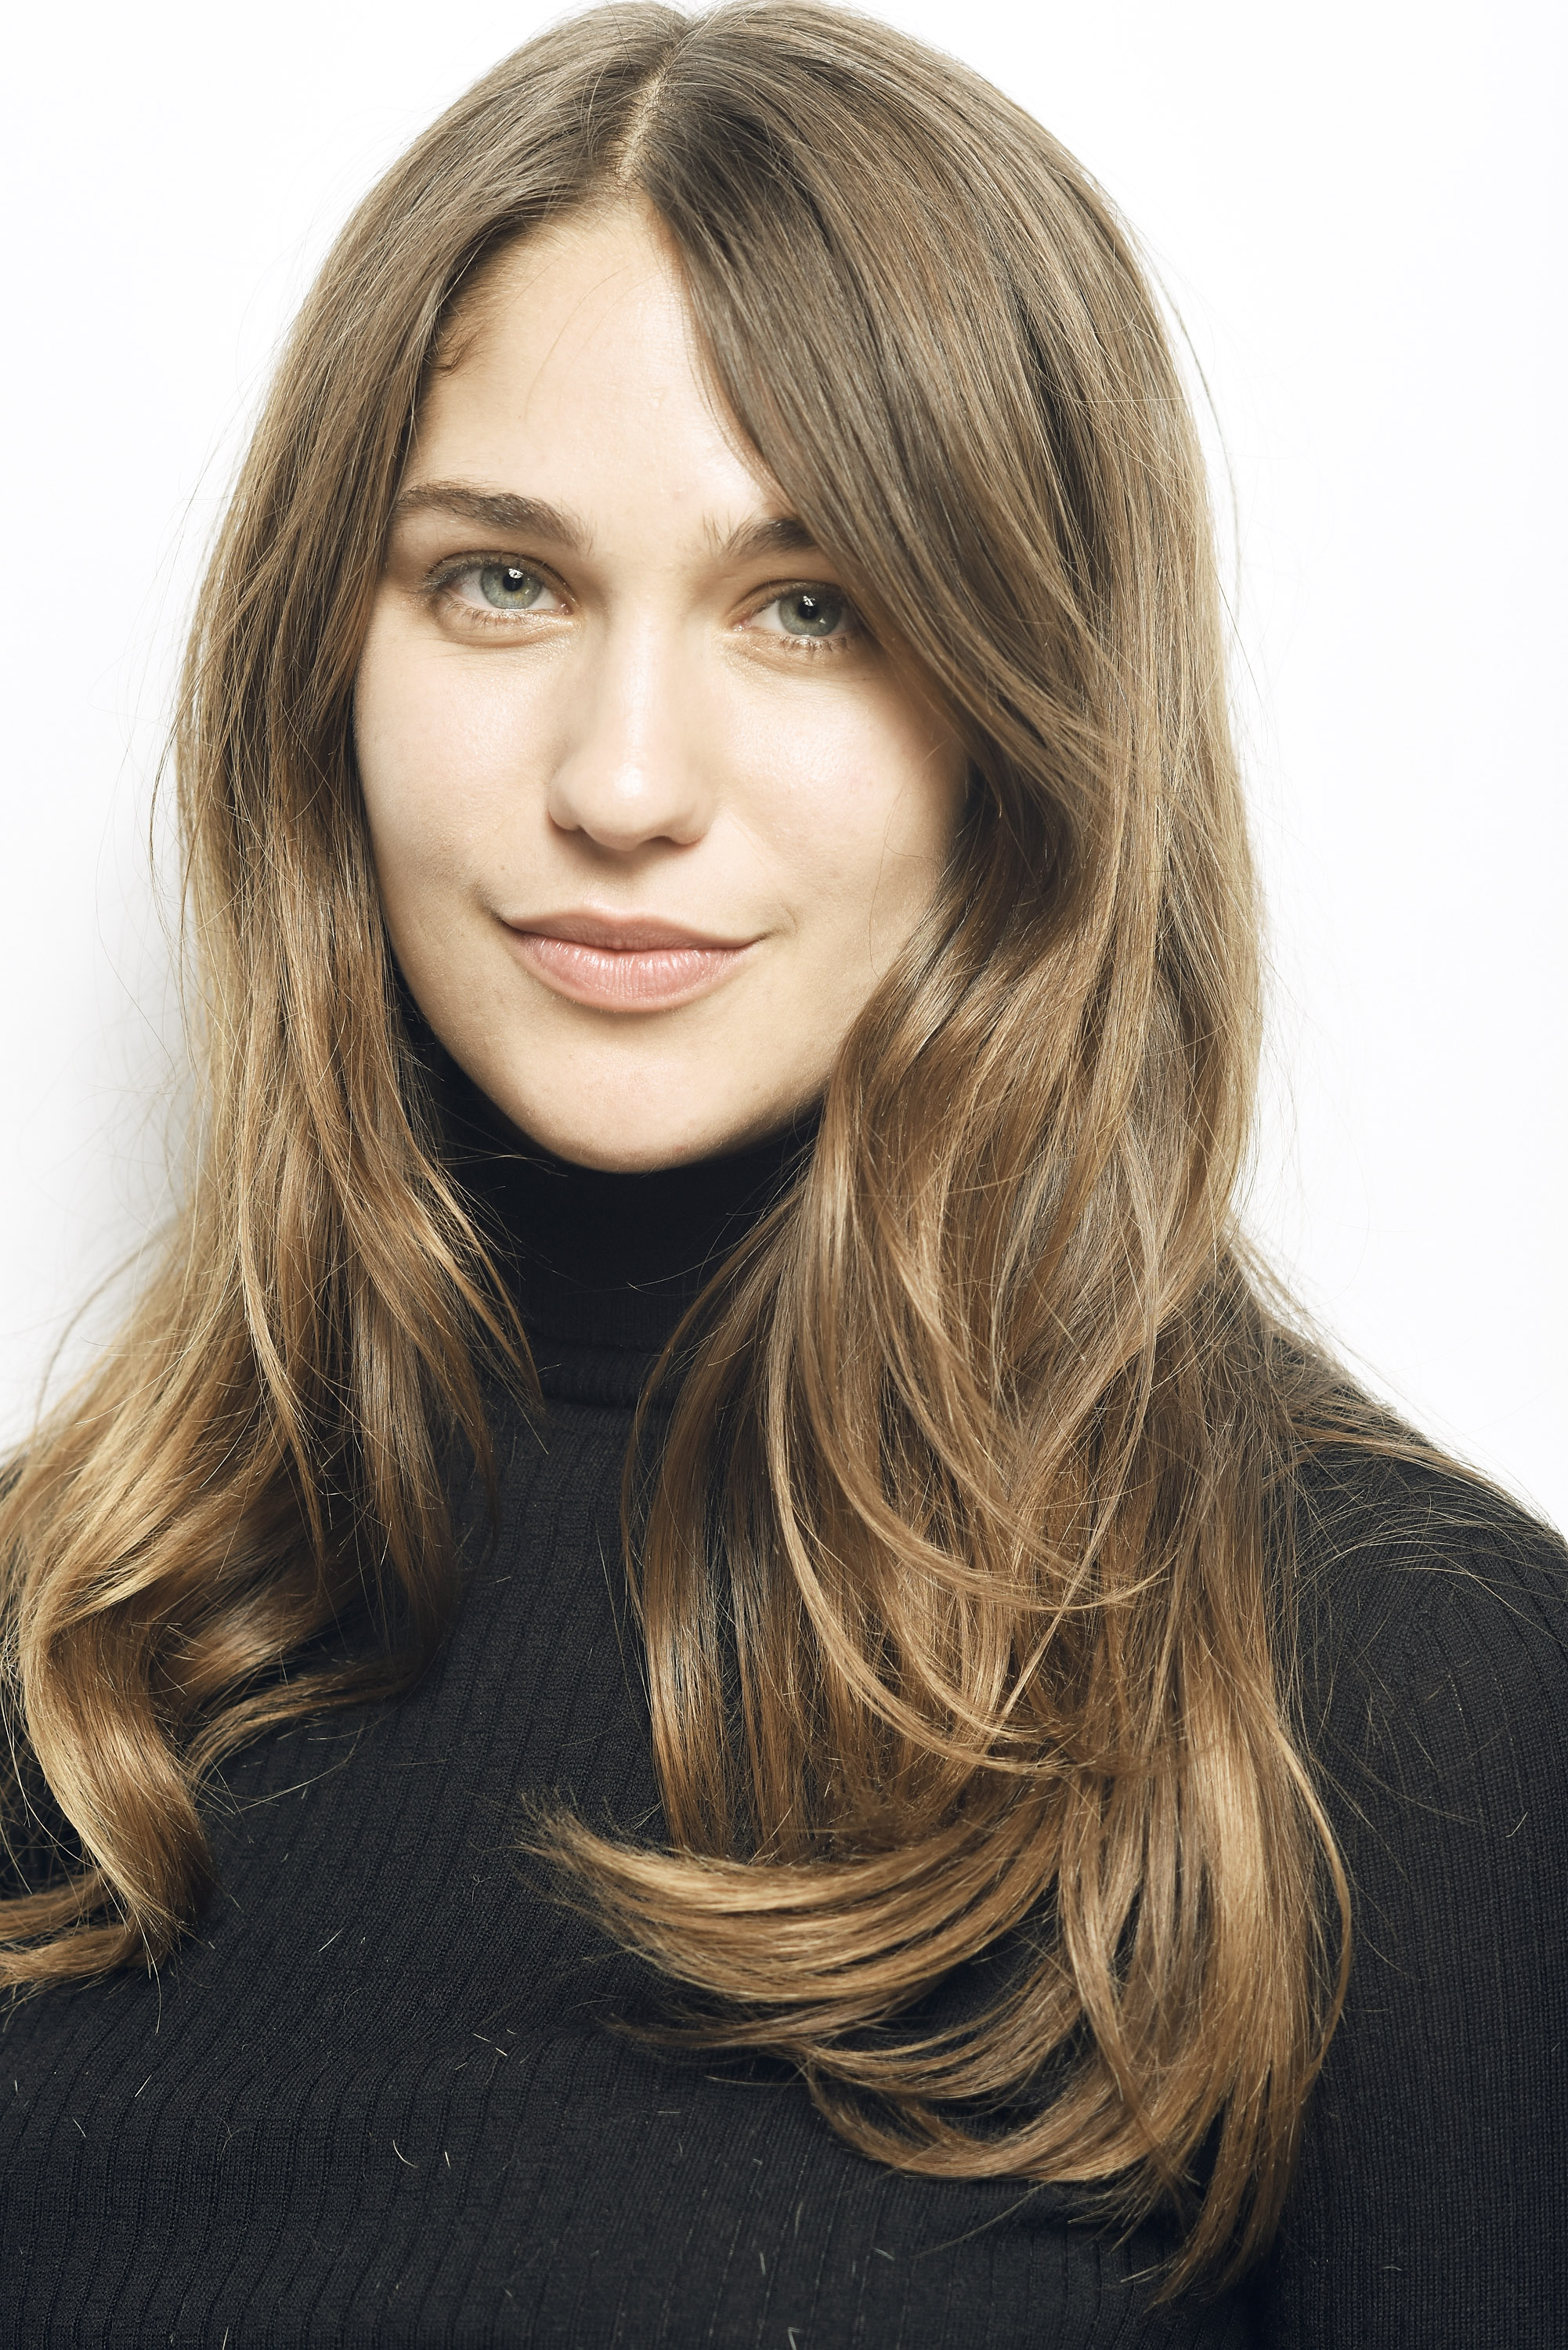 Lola Kirke poses for a portrait during the Sundance Film Festival on January 24, 2015 in Park City, Utah.